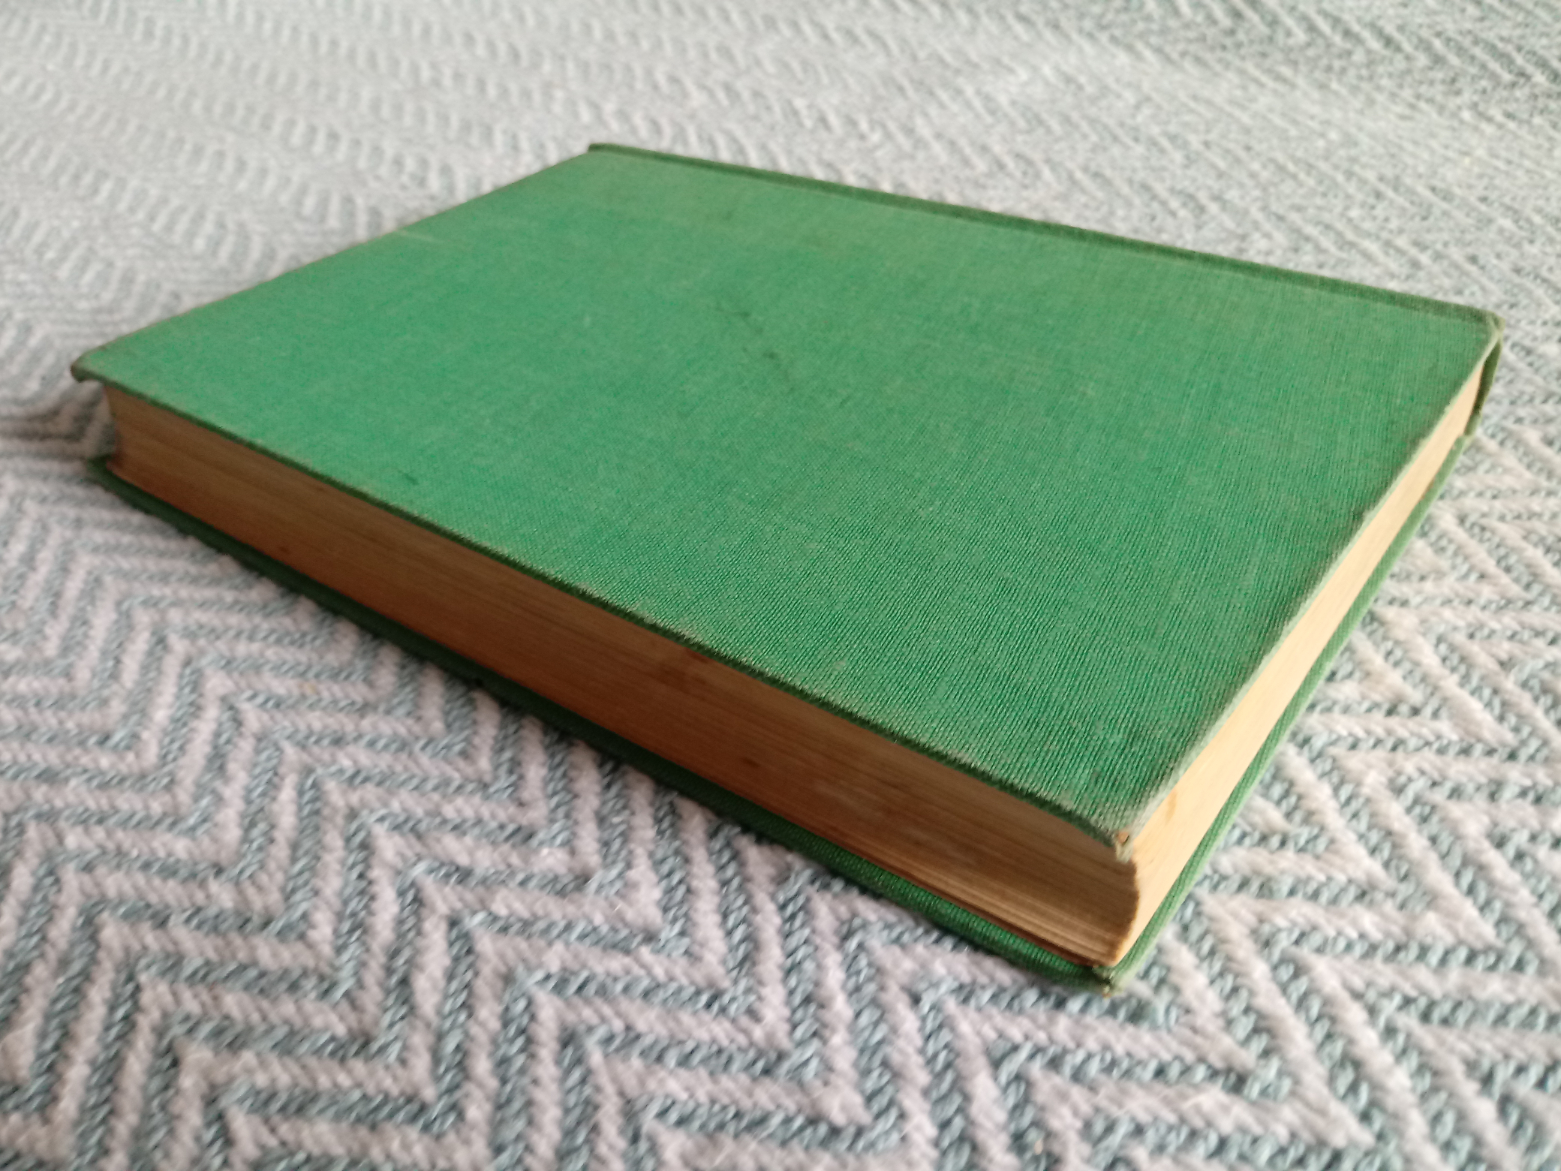 An Episode Of Sparrows by Rumer Godden 264 pages Published 1956 Macmillan & Co Ltd. Showing signs of - Image 2 of 3